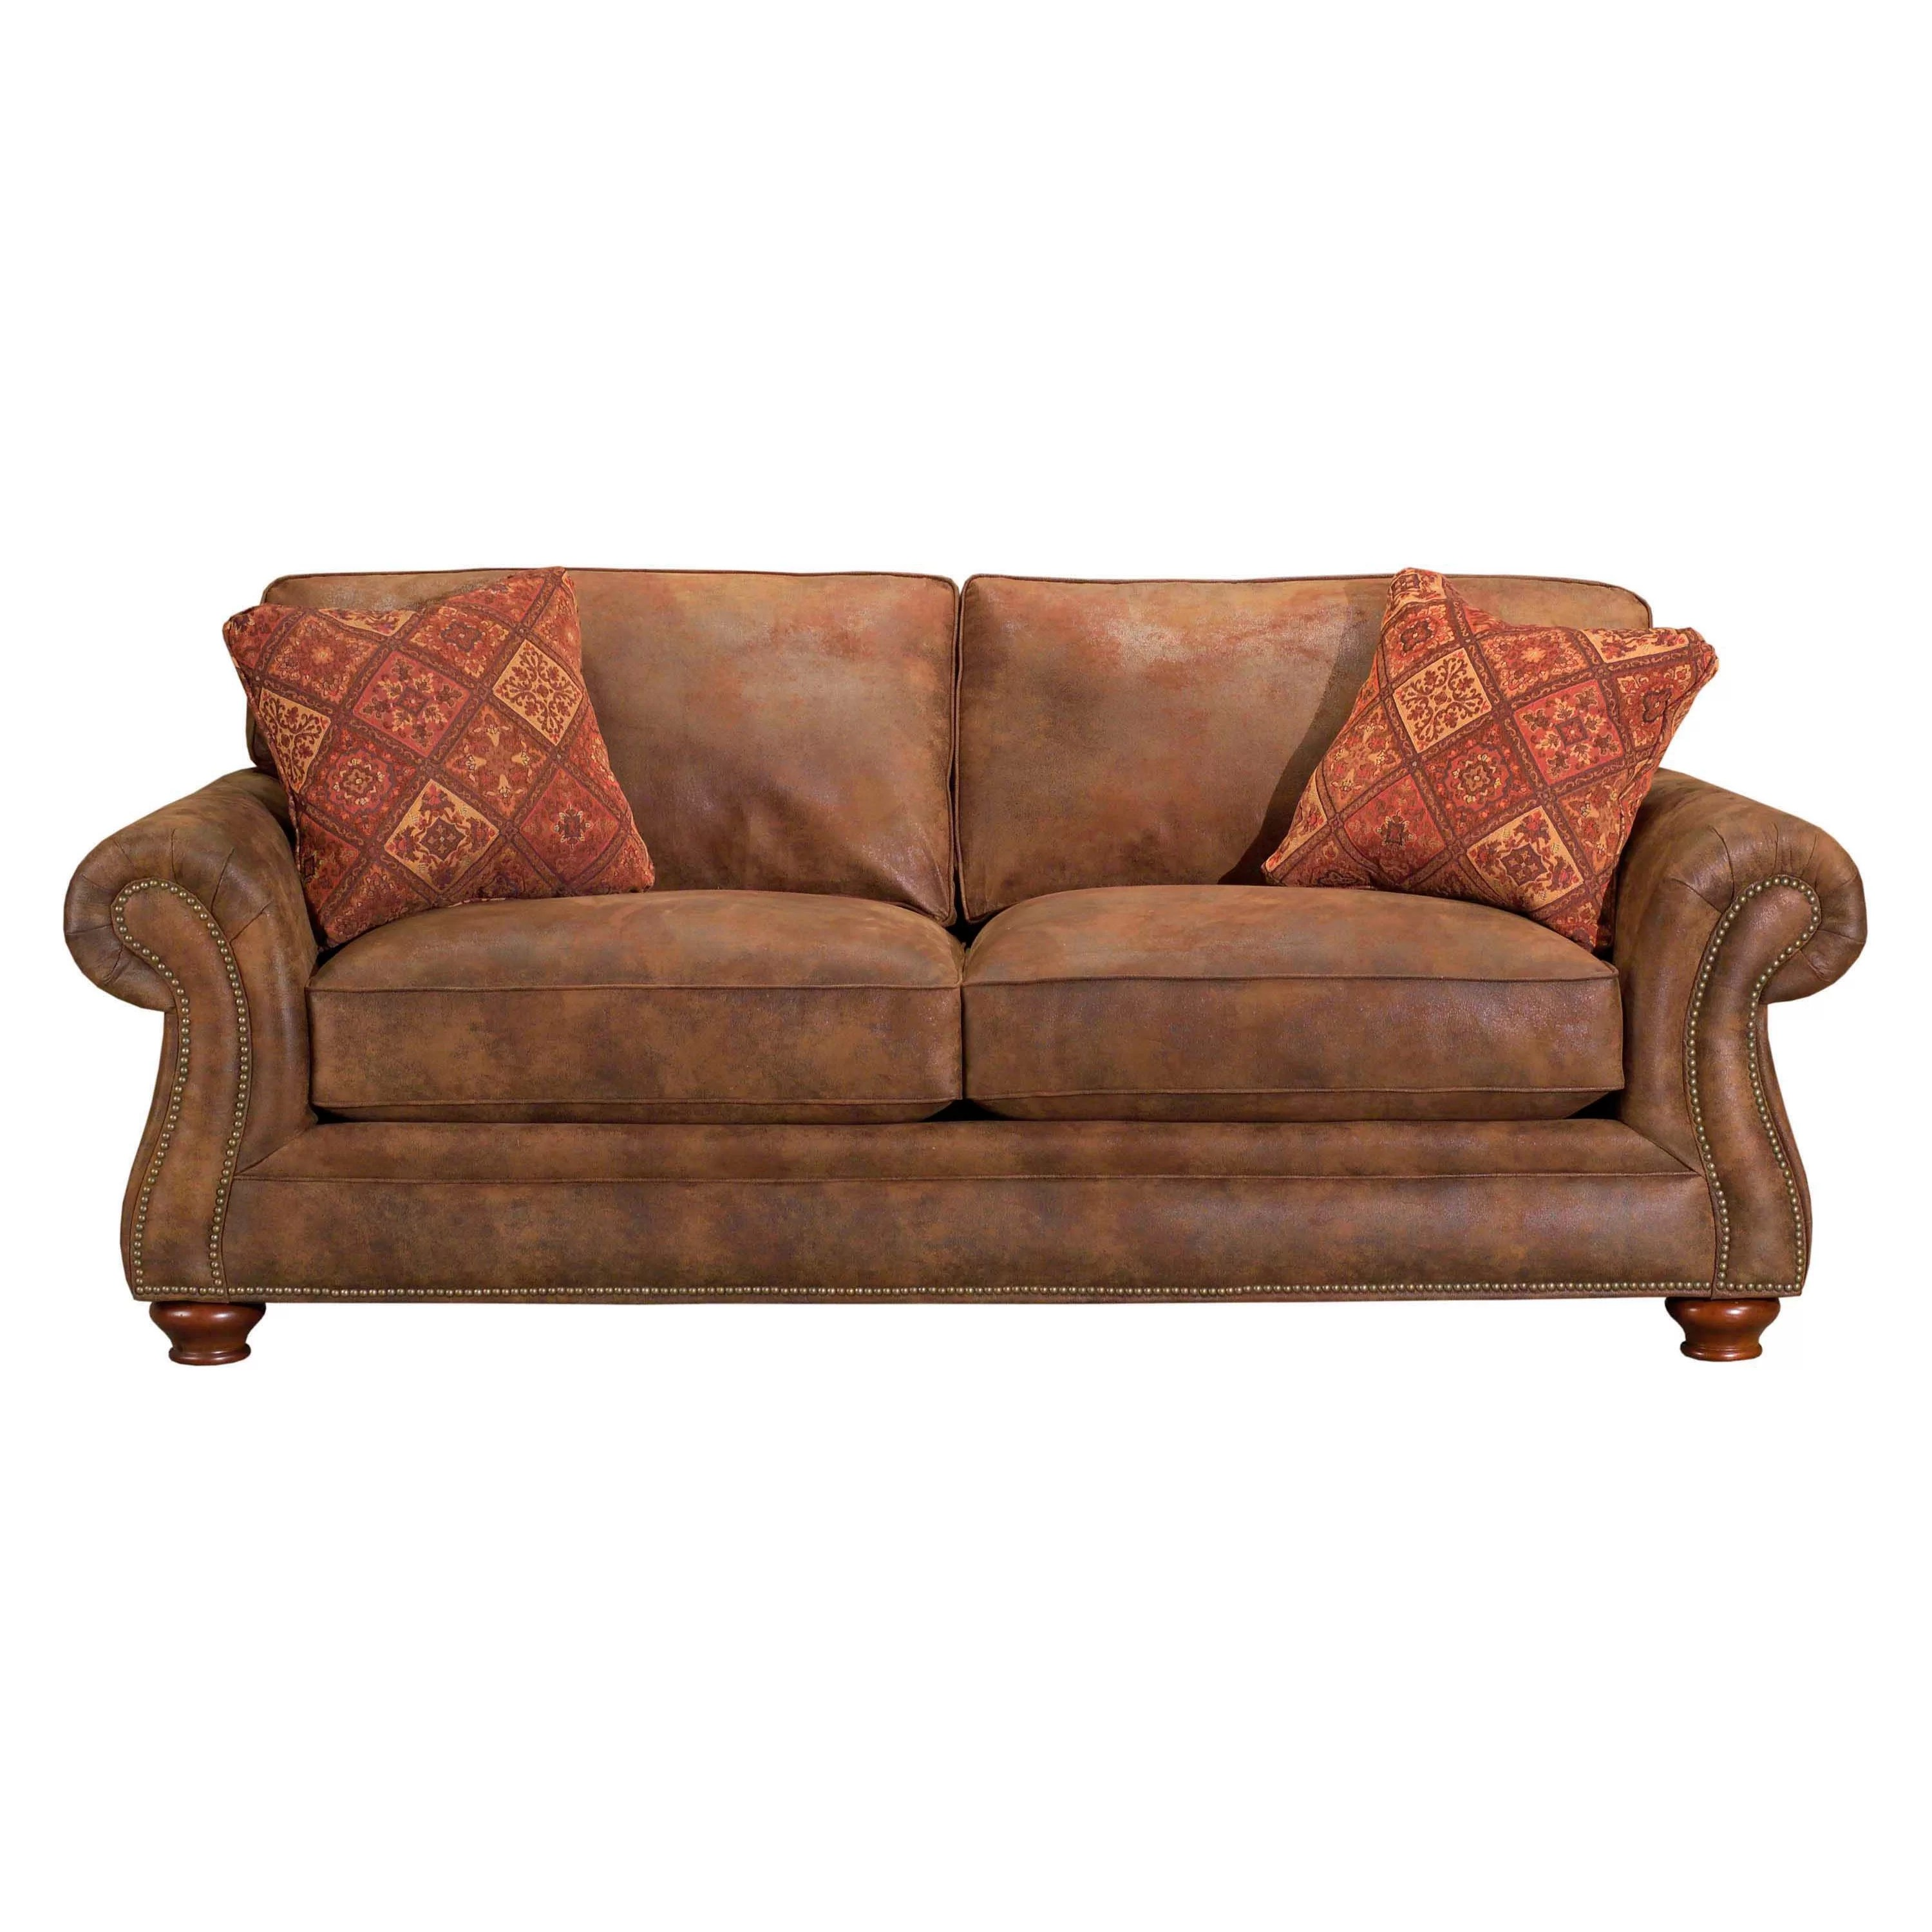 broyhill sofa nebraska furniture mart how much would it cost to reupholster a uk laramie and reviews wayfair